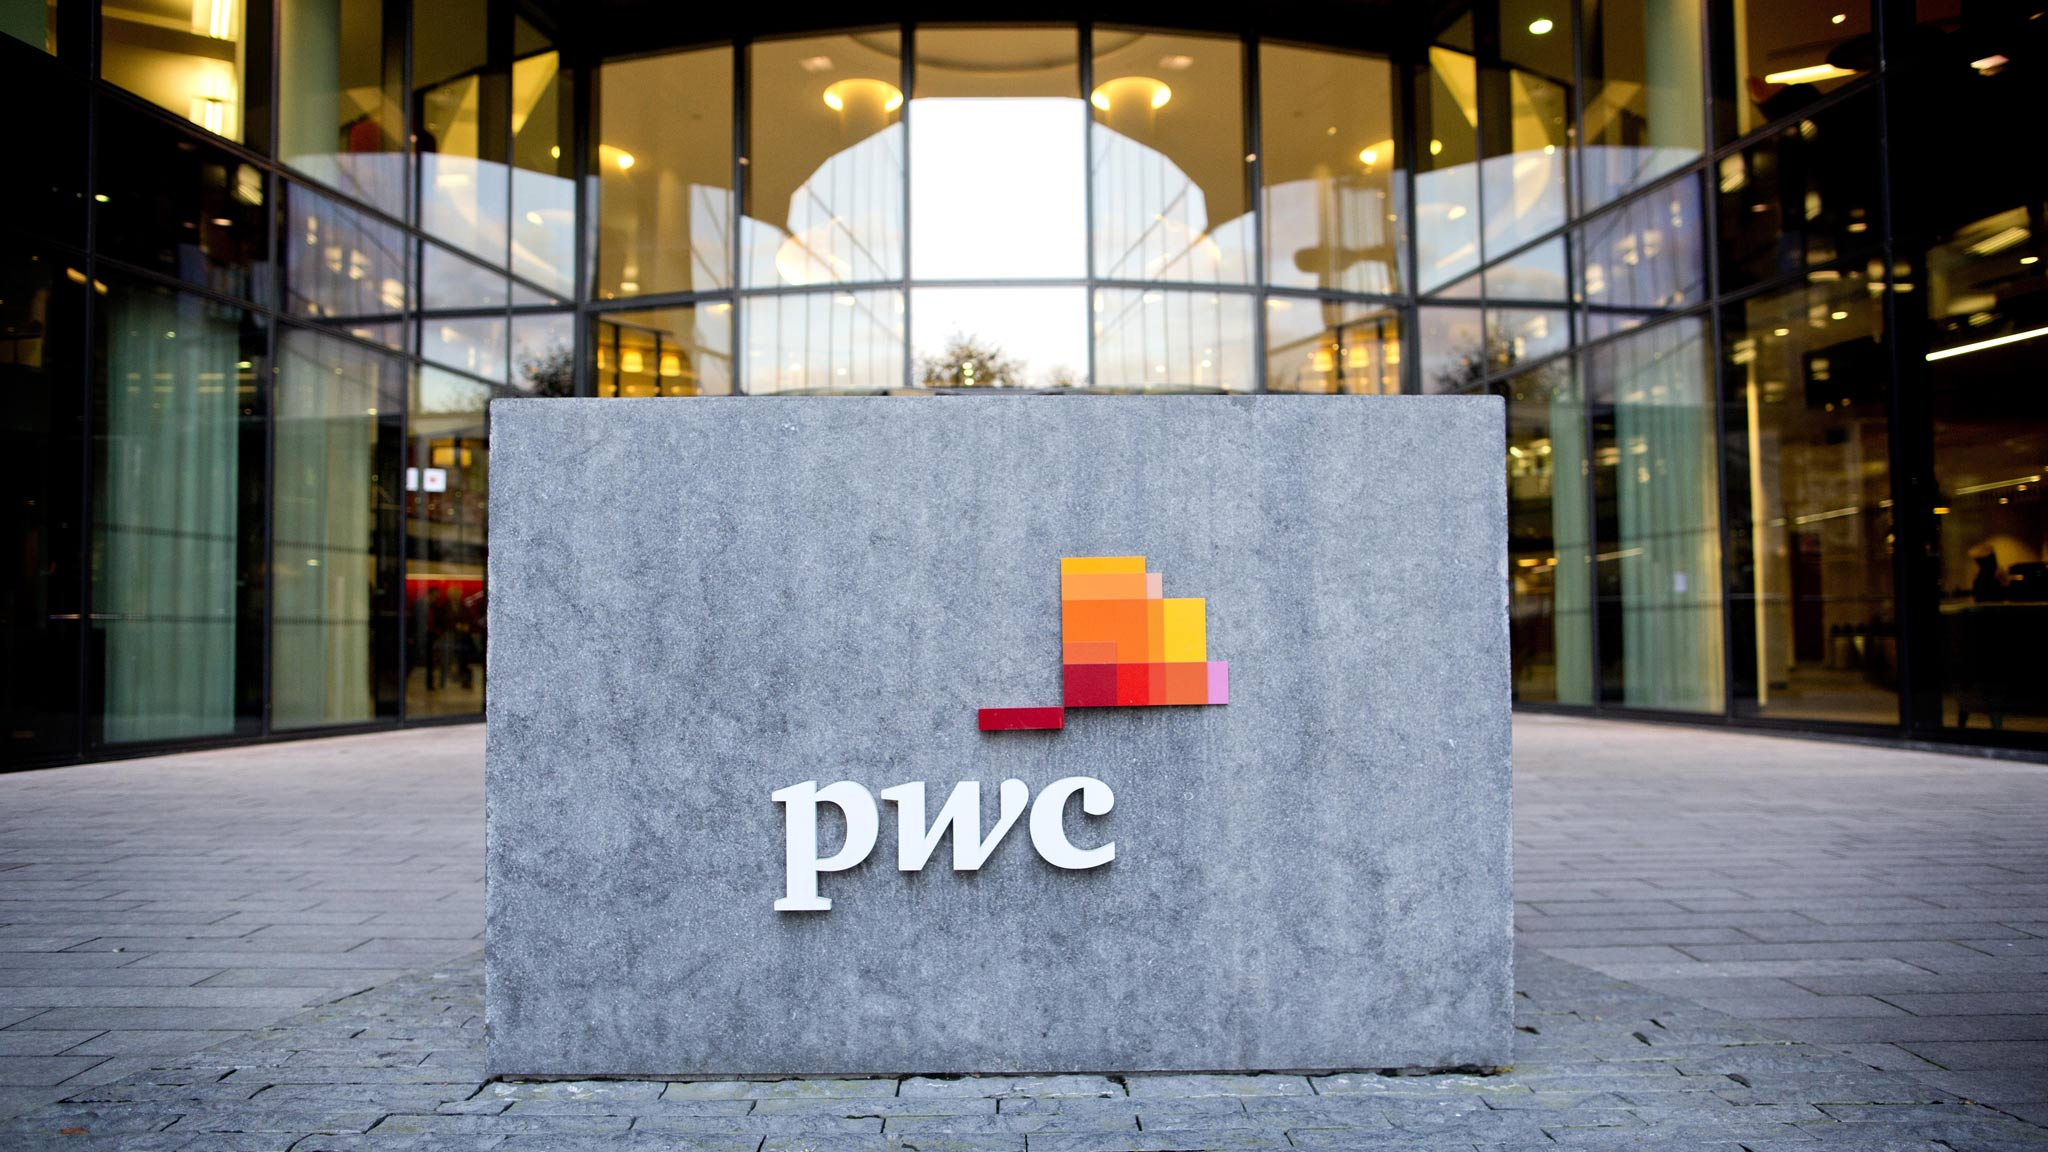 PricewaterhouseCoopers (PWC) лого